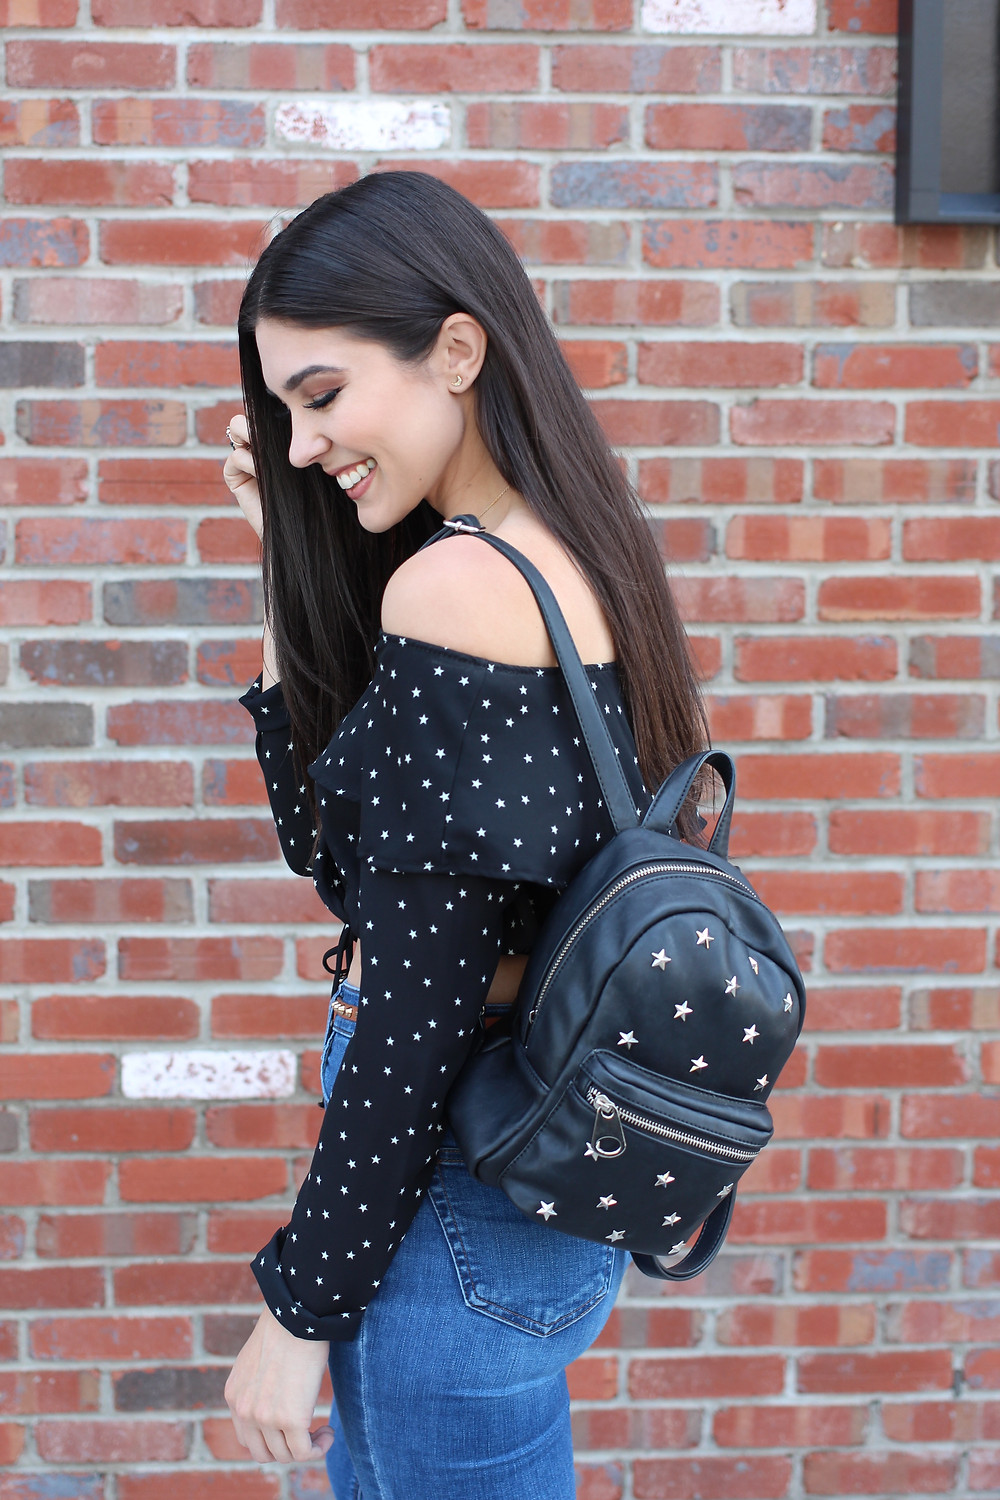 Star print outfit © Cathy Kelley